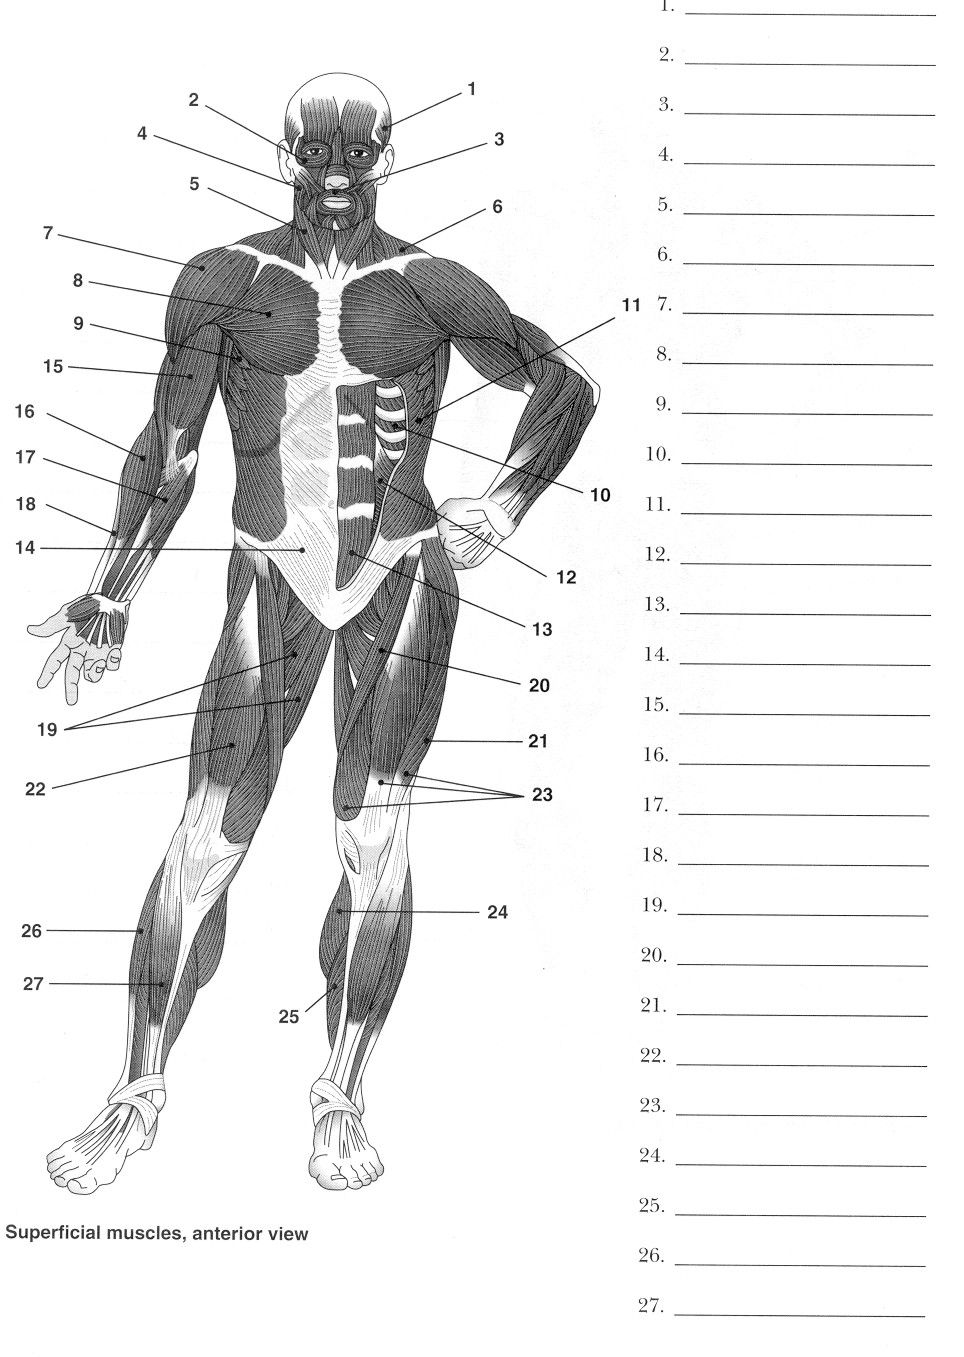 Worksheets Muscle Identification Worksheet muscle anatomy printable diagram worksheet the largest and most comprehensive